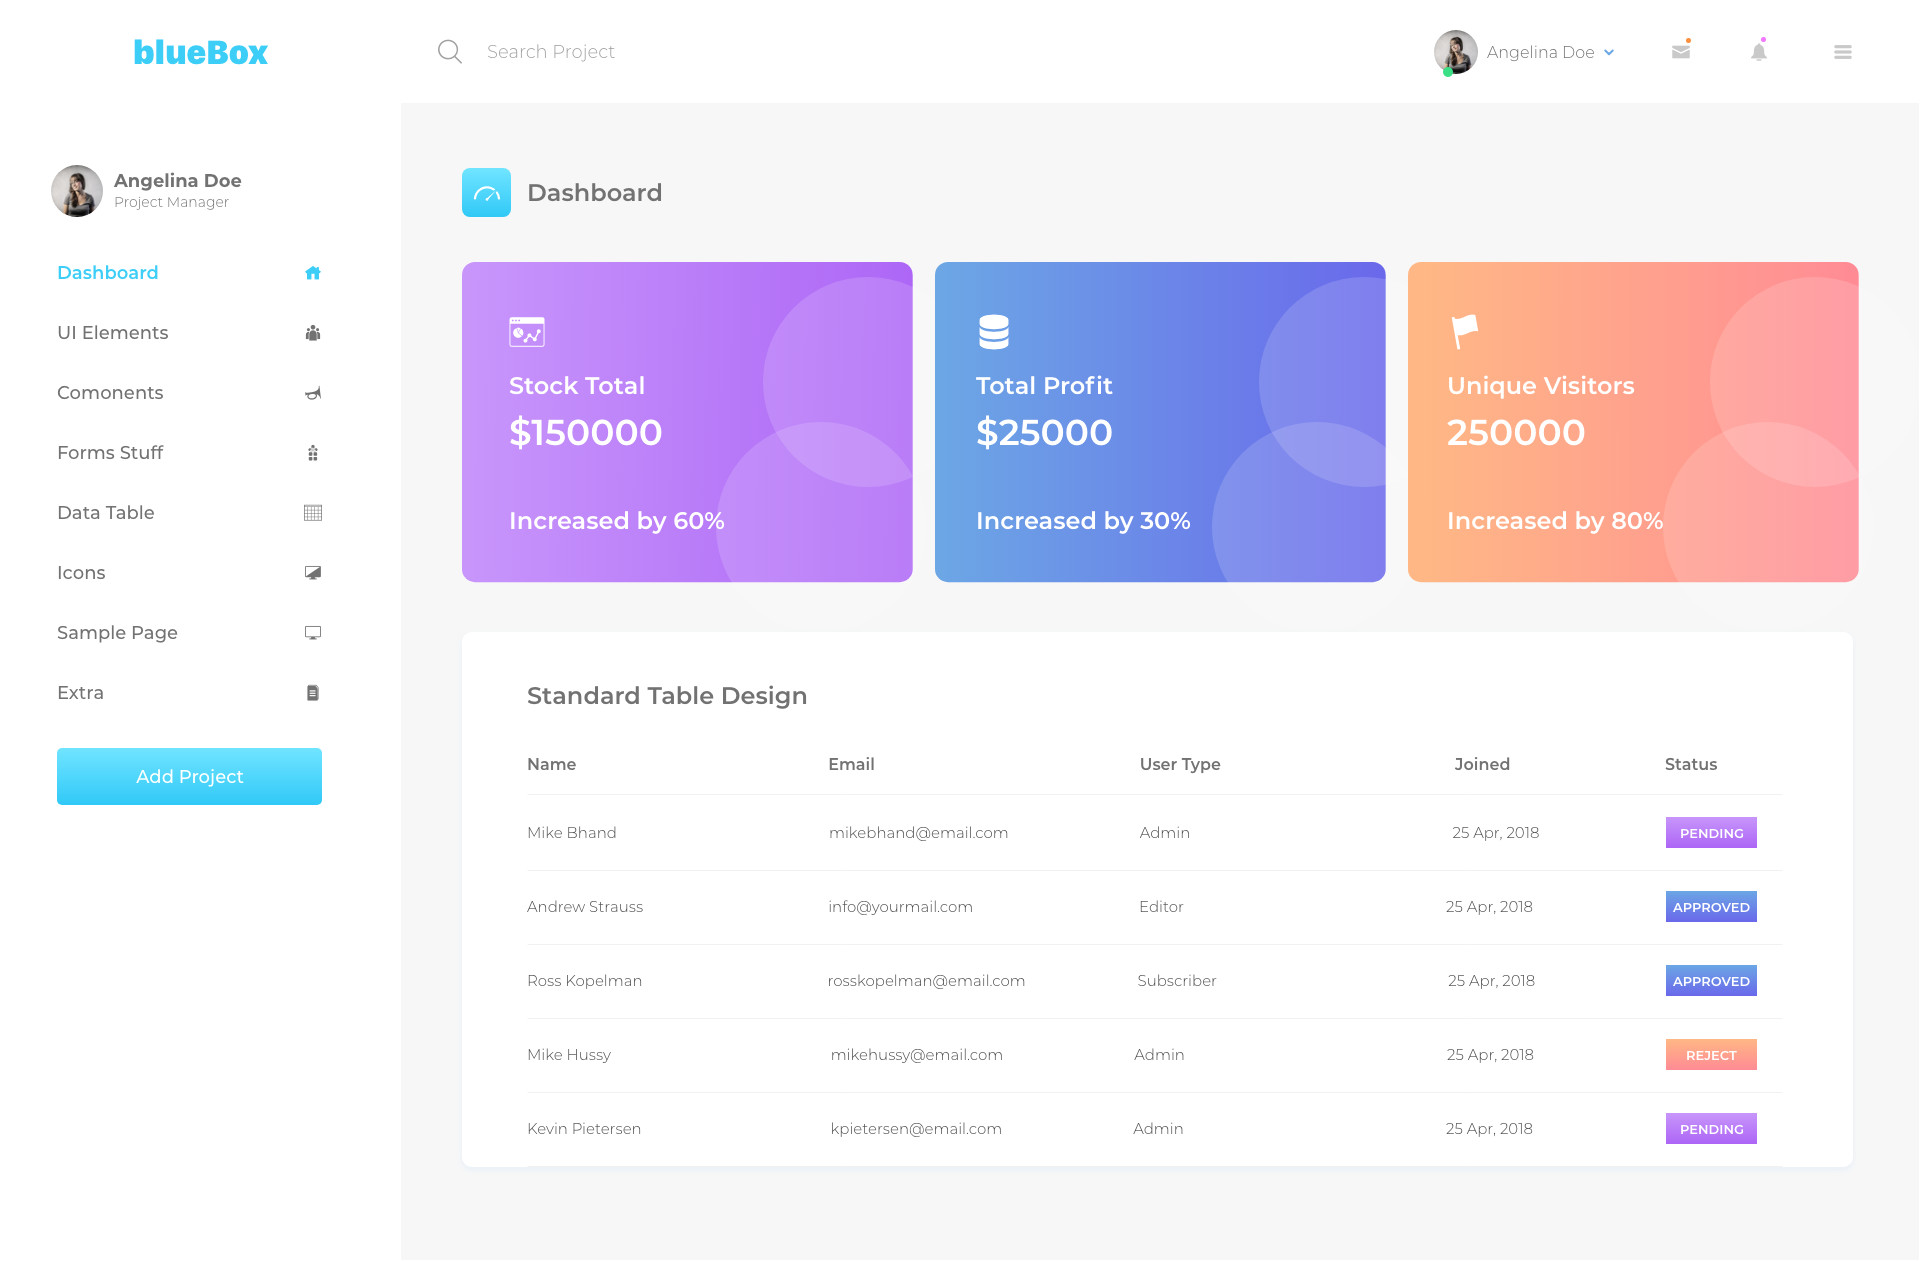 Bootstrap Card Header Background Color Bluebox Dashboard Dribble Design Challenge Code Review